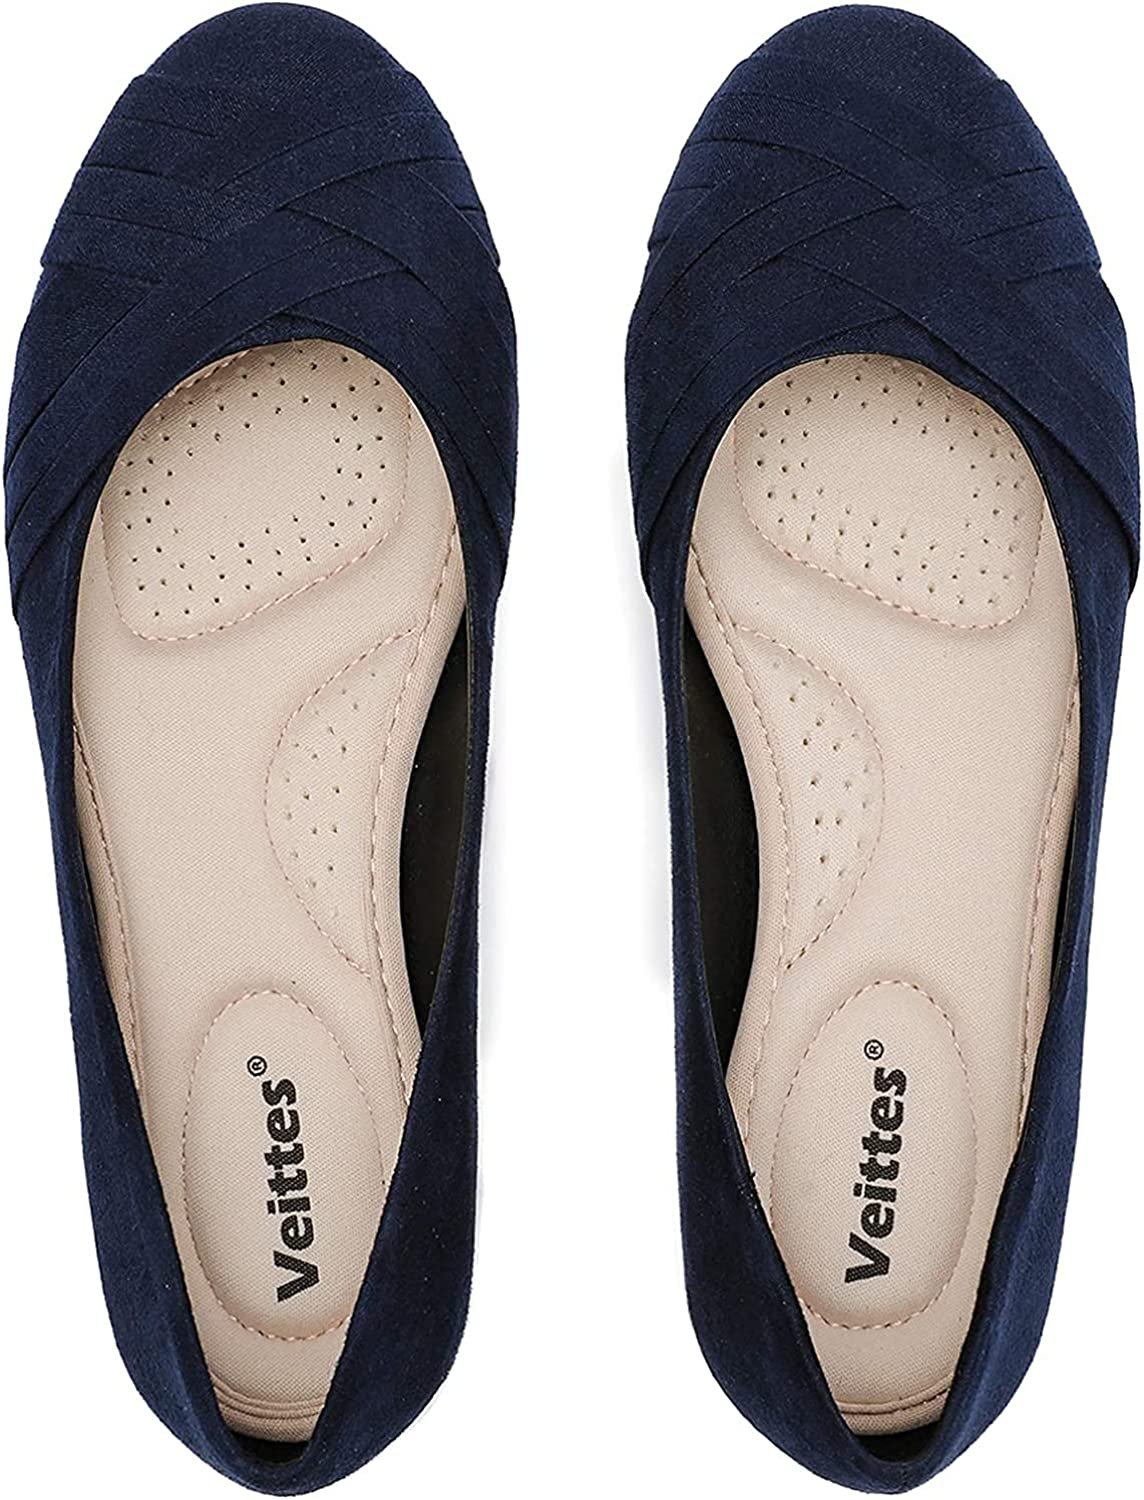 Veittes Women's Flat New product!! Shoes Round Ballet Classic Suede Toe Flats Max 60% OFF